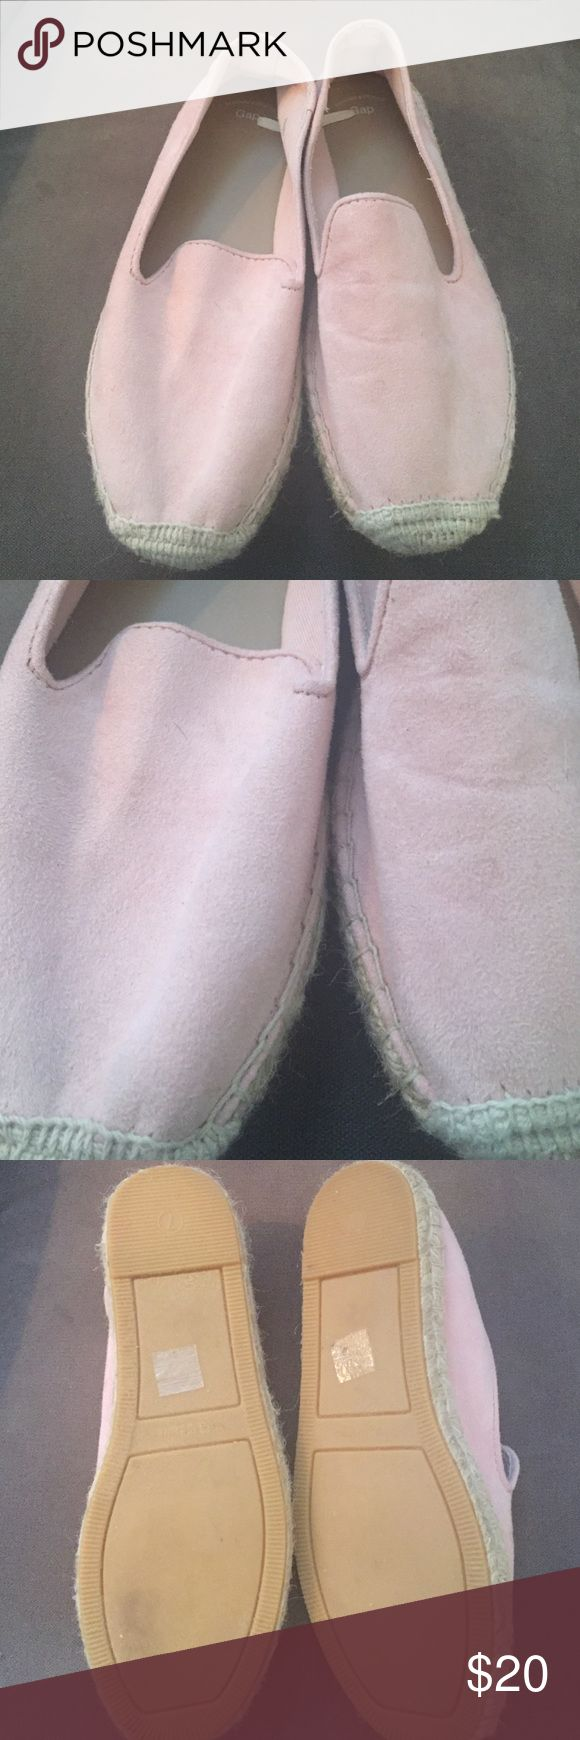 :: pink espadrilles:: In good used condition. Size 7. GAP Shoes Espadrilles